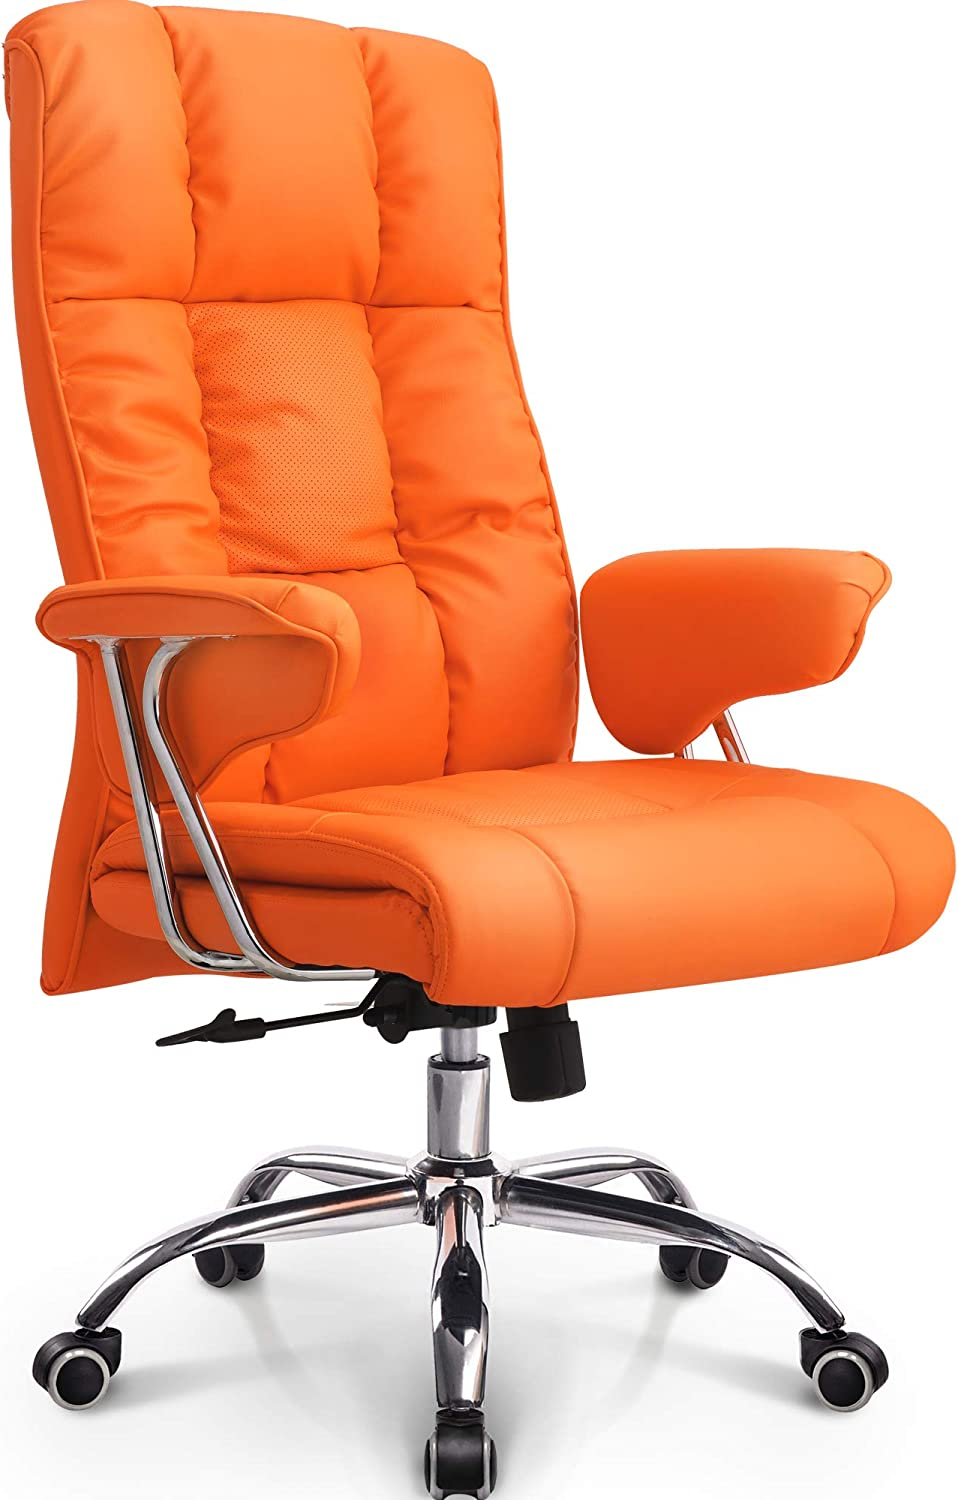 Amazon Com Neo Chair Office Chair Computer Desk Chair Gaming Ergonomic High Back Cushion Lumbar Support With Wheels Comfortable Orange Upholstered Leather Racing Seat Adjustable Swivel Rolling Home Executive Office Products